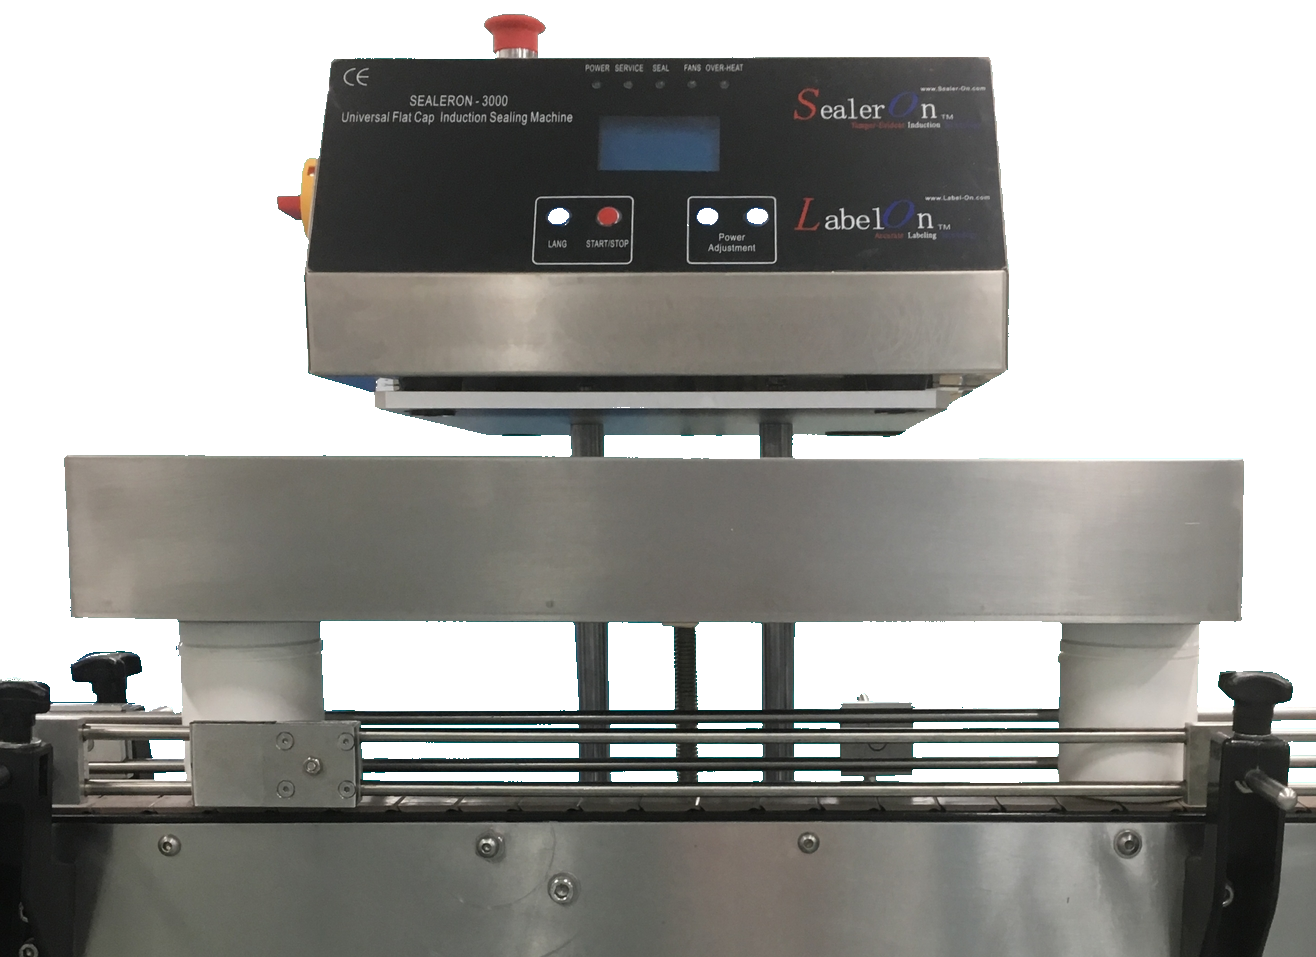 SealerOn3000 Induction Sealing Machine